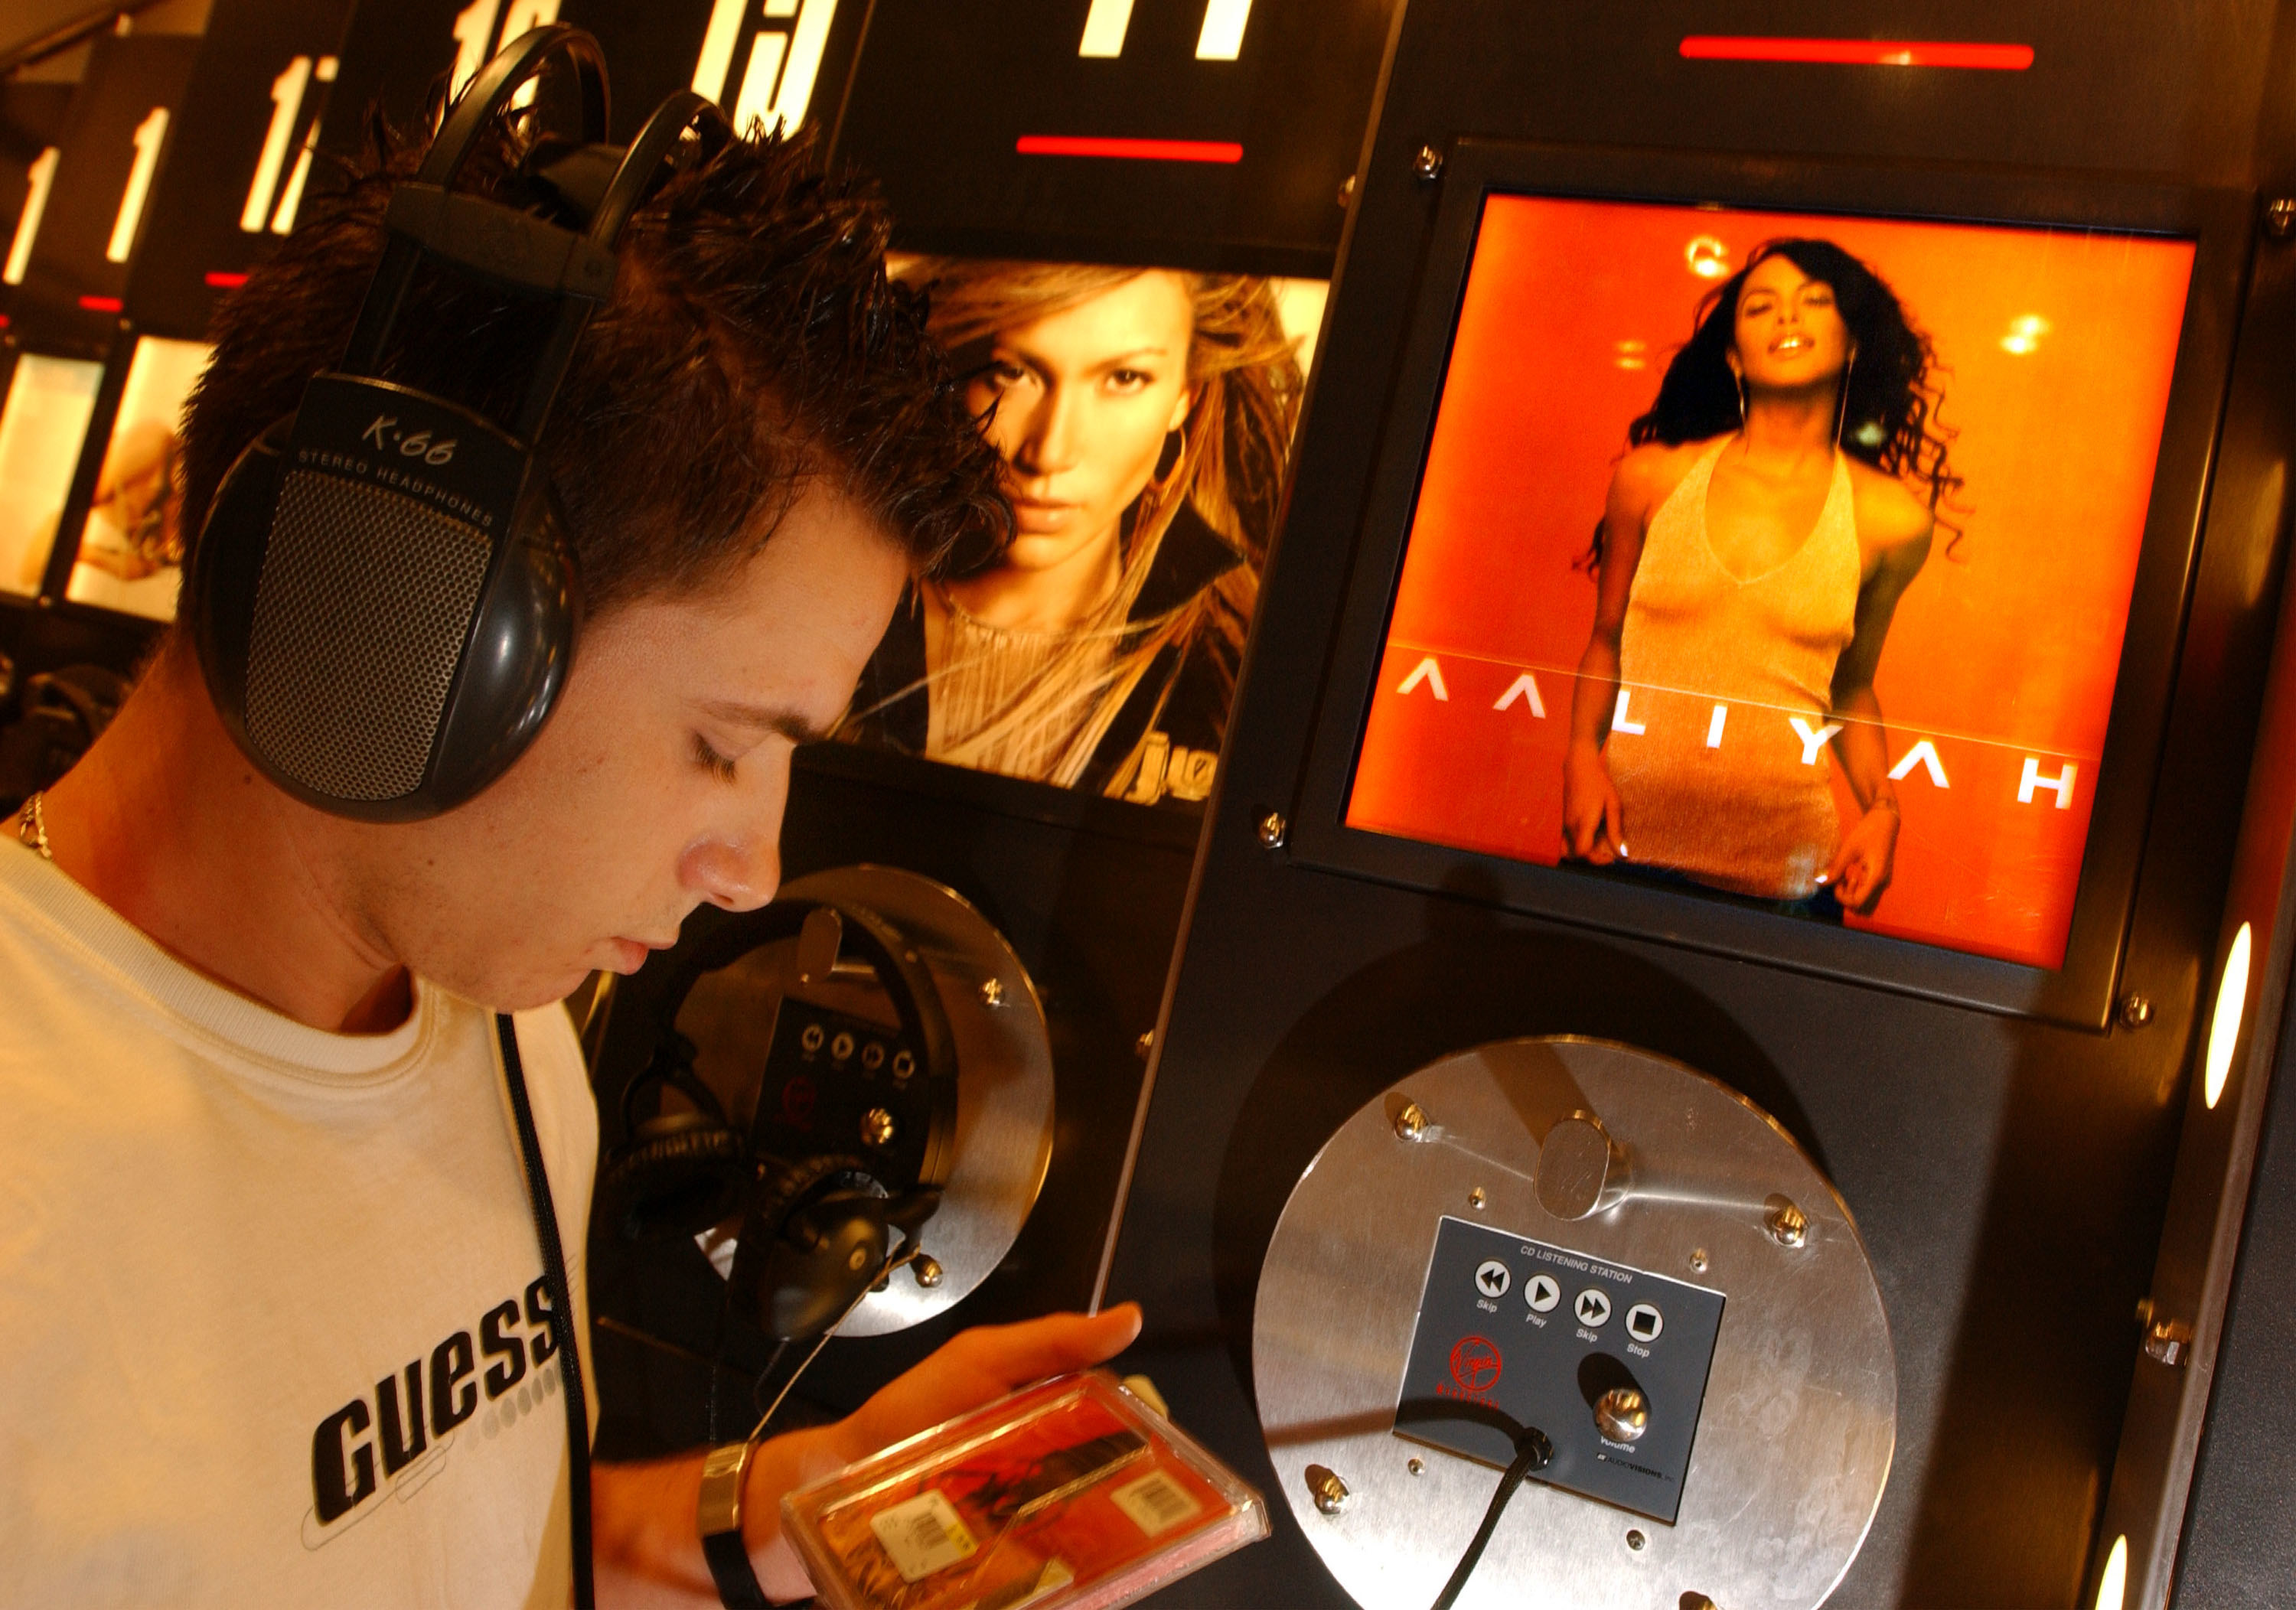 A man listening to Aaliyah's Aaliyah album at a CD kiosk inside a Virgin Megastore.